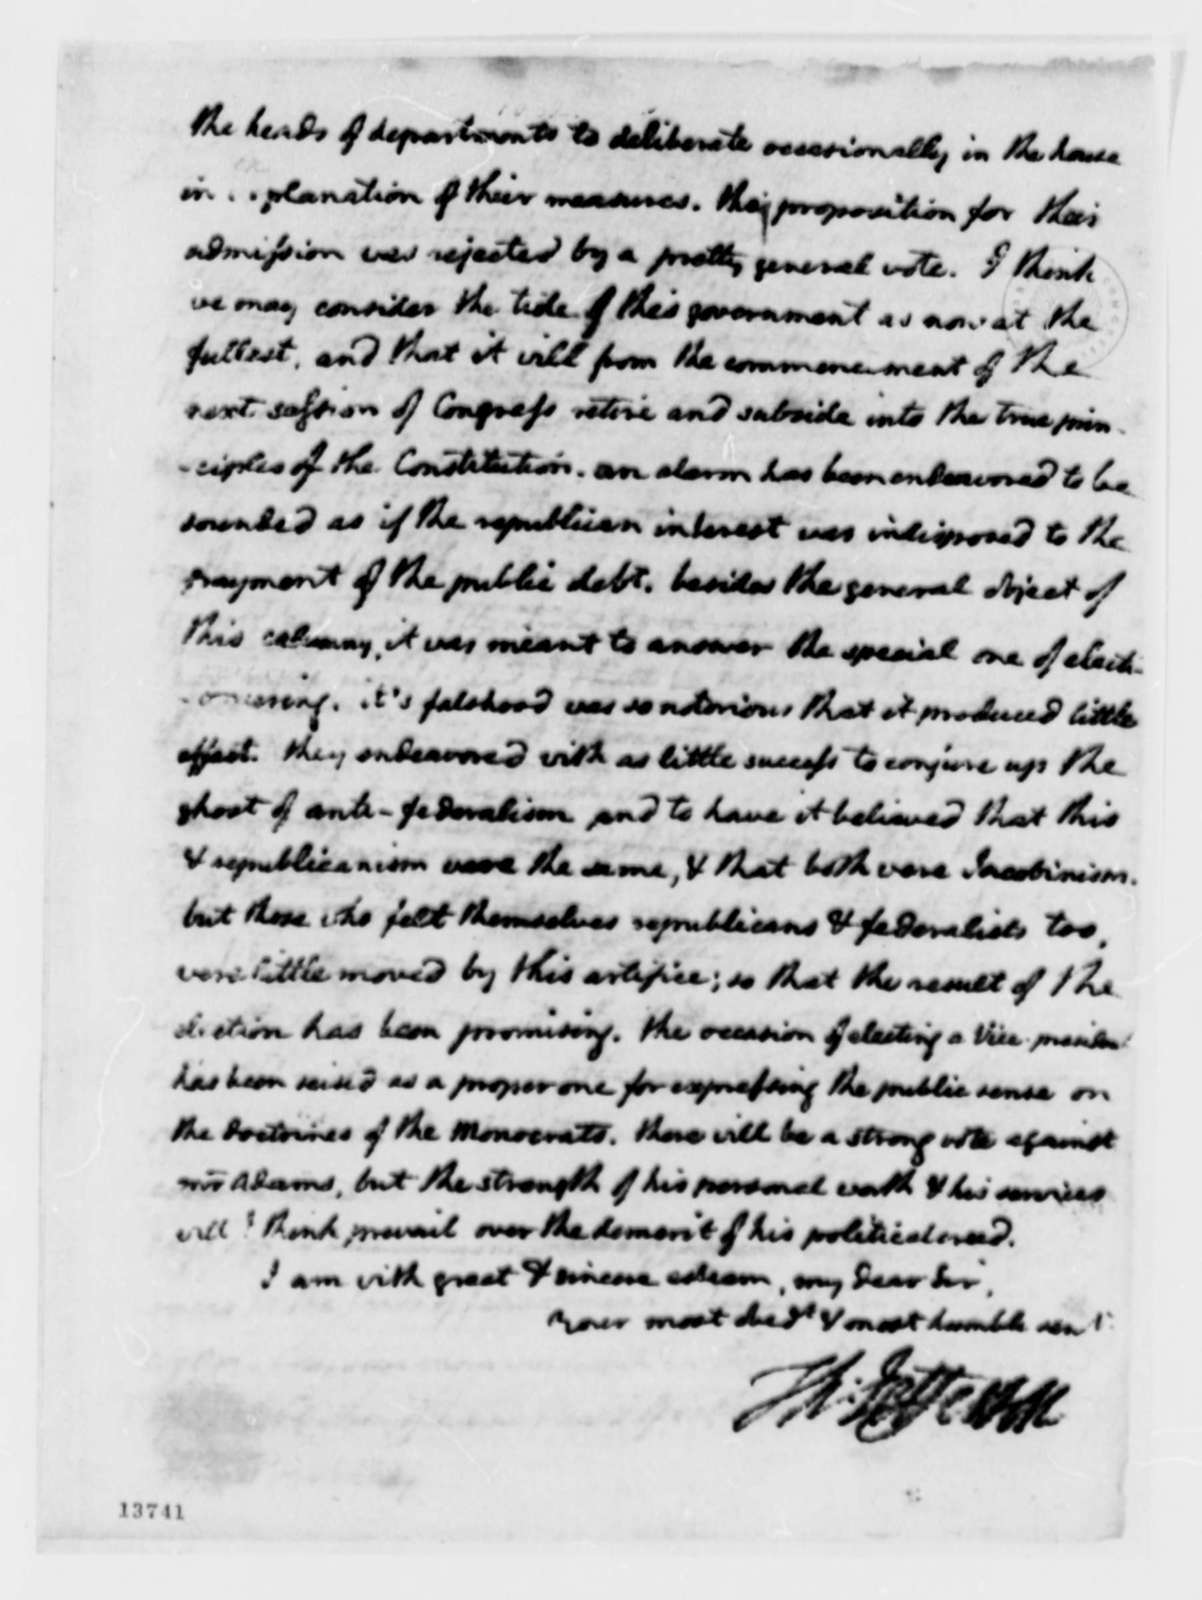 Thomas Jefferson to Thomas Pinckney, December 3, 1792